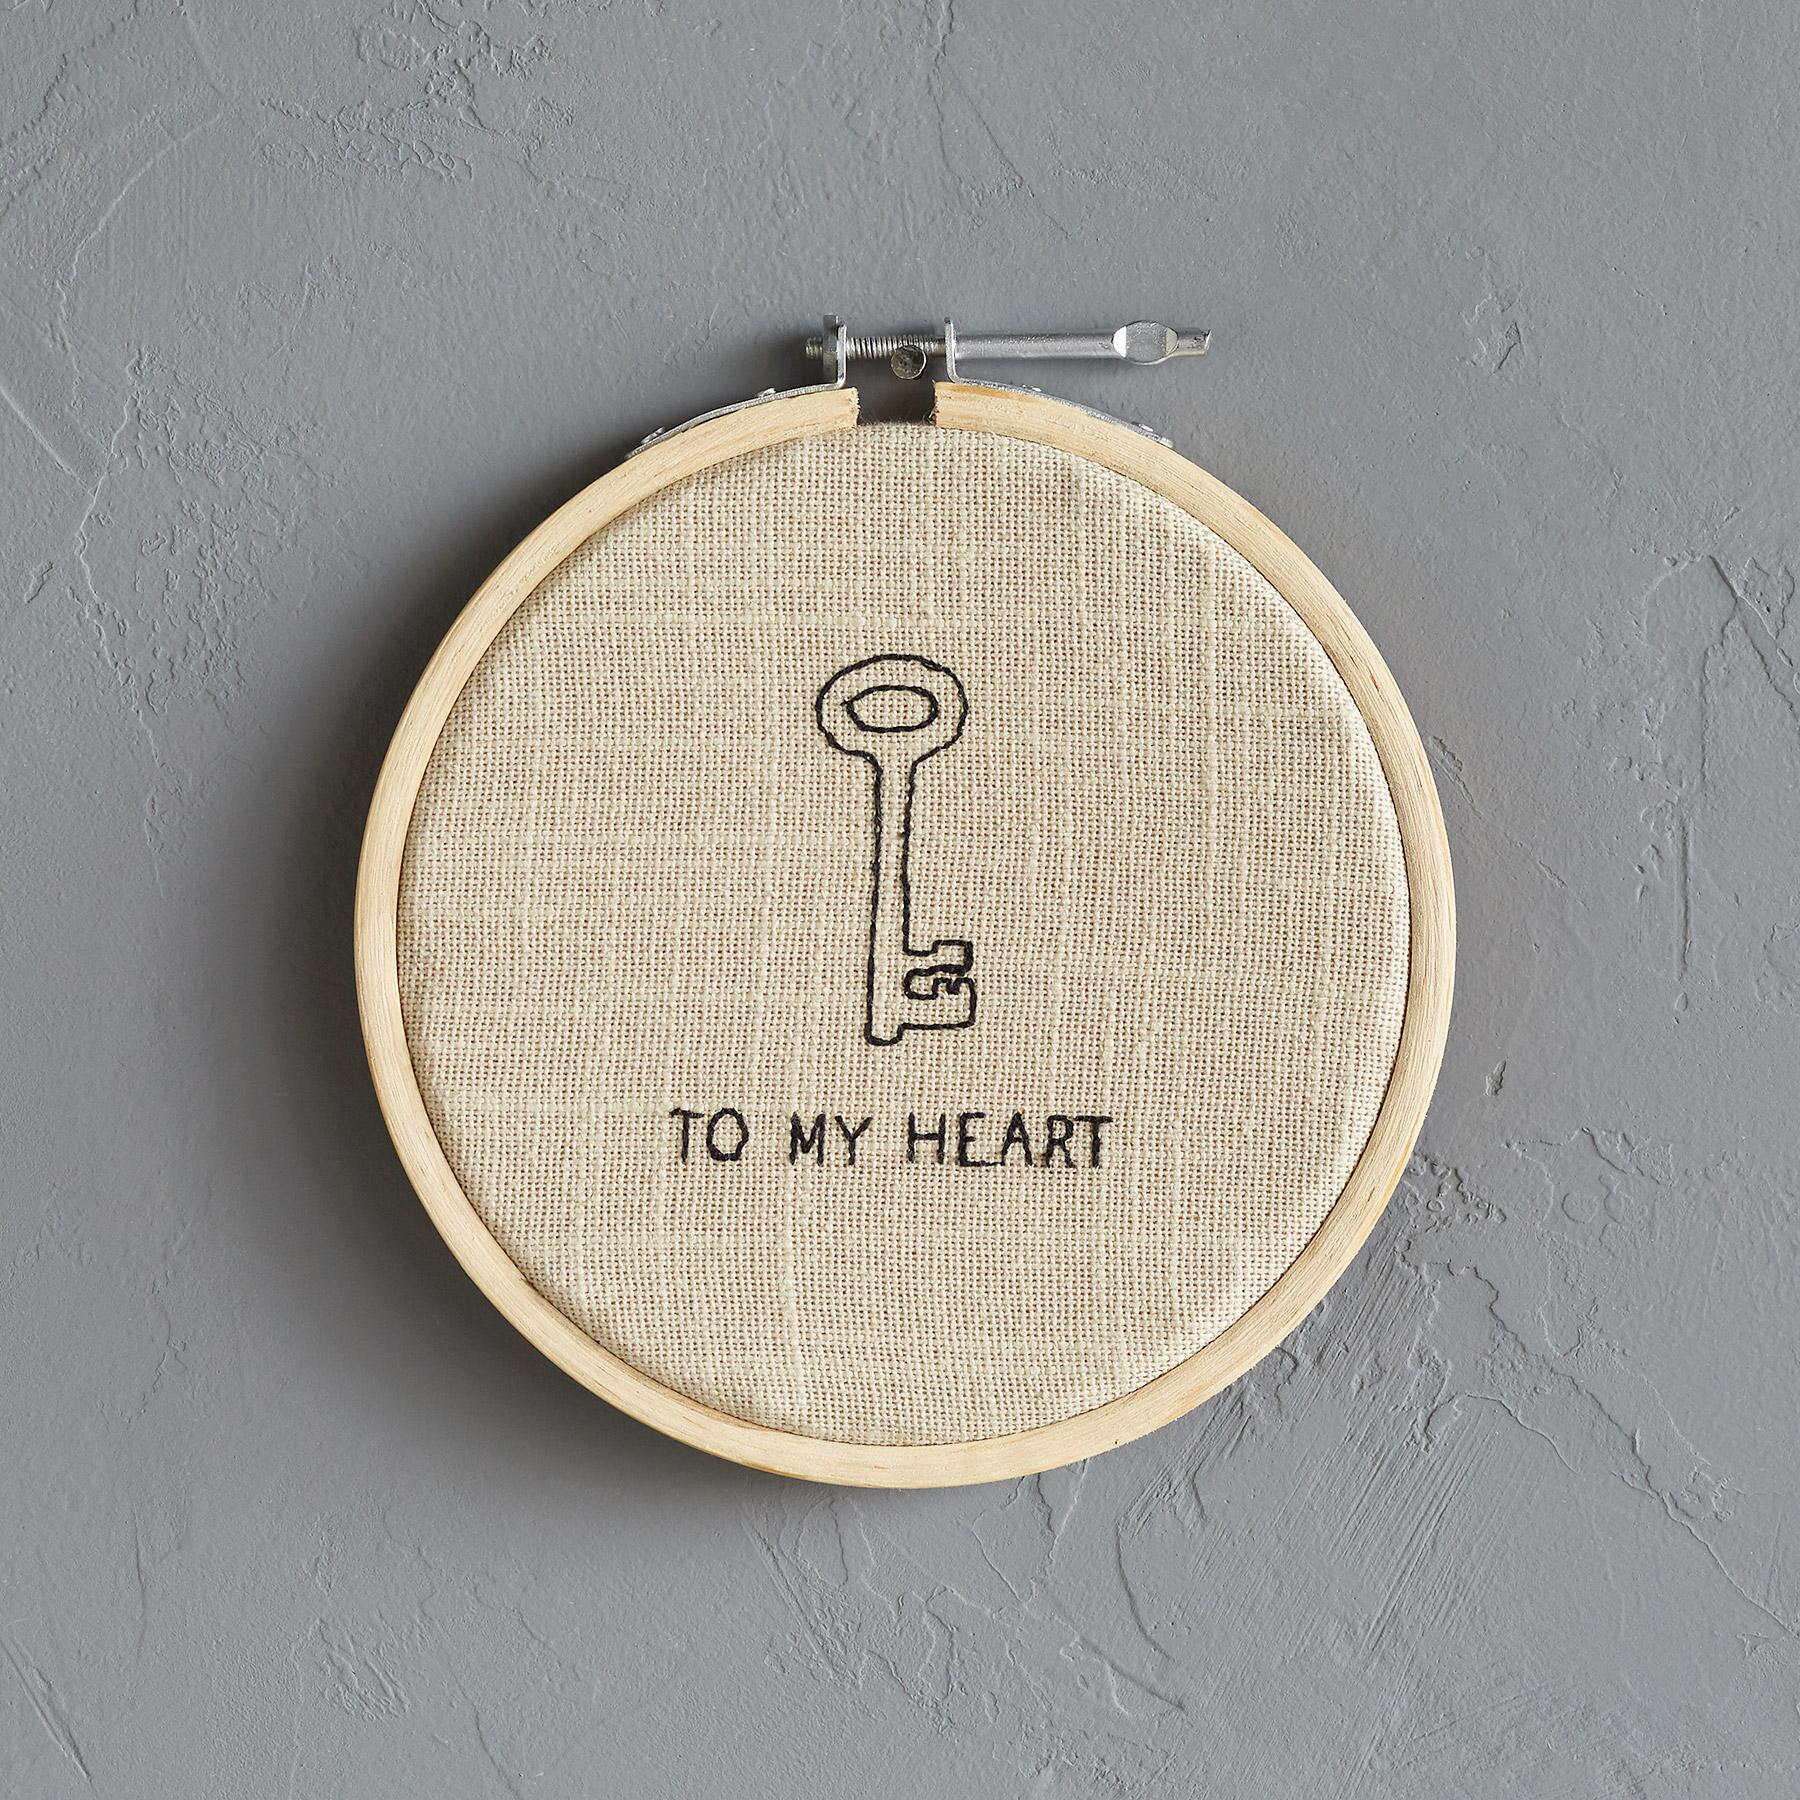 2B KEY TO MY HEART XSTITCH SM: View 1